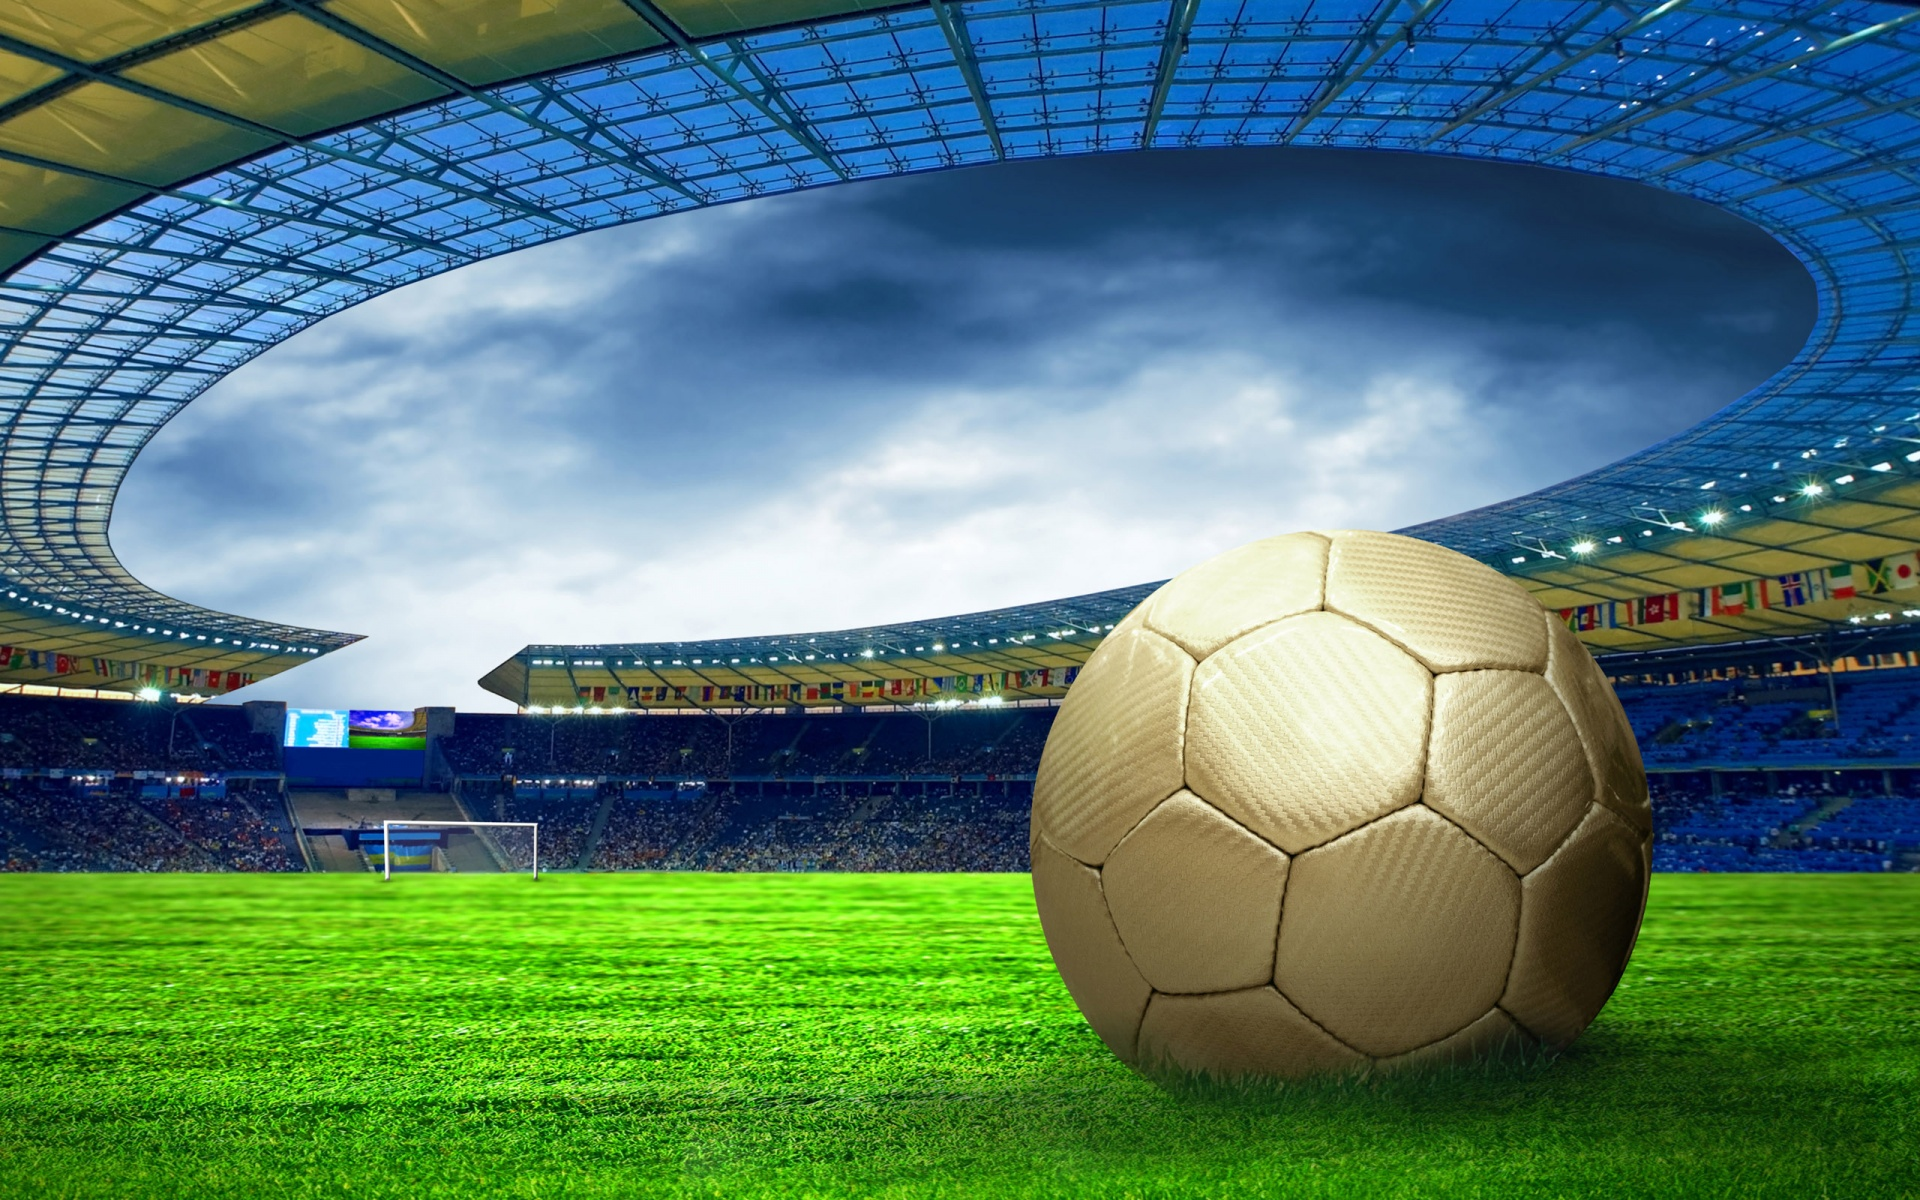 Soccer ball on the field wallpapers   Soccer ball on the field stock photos